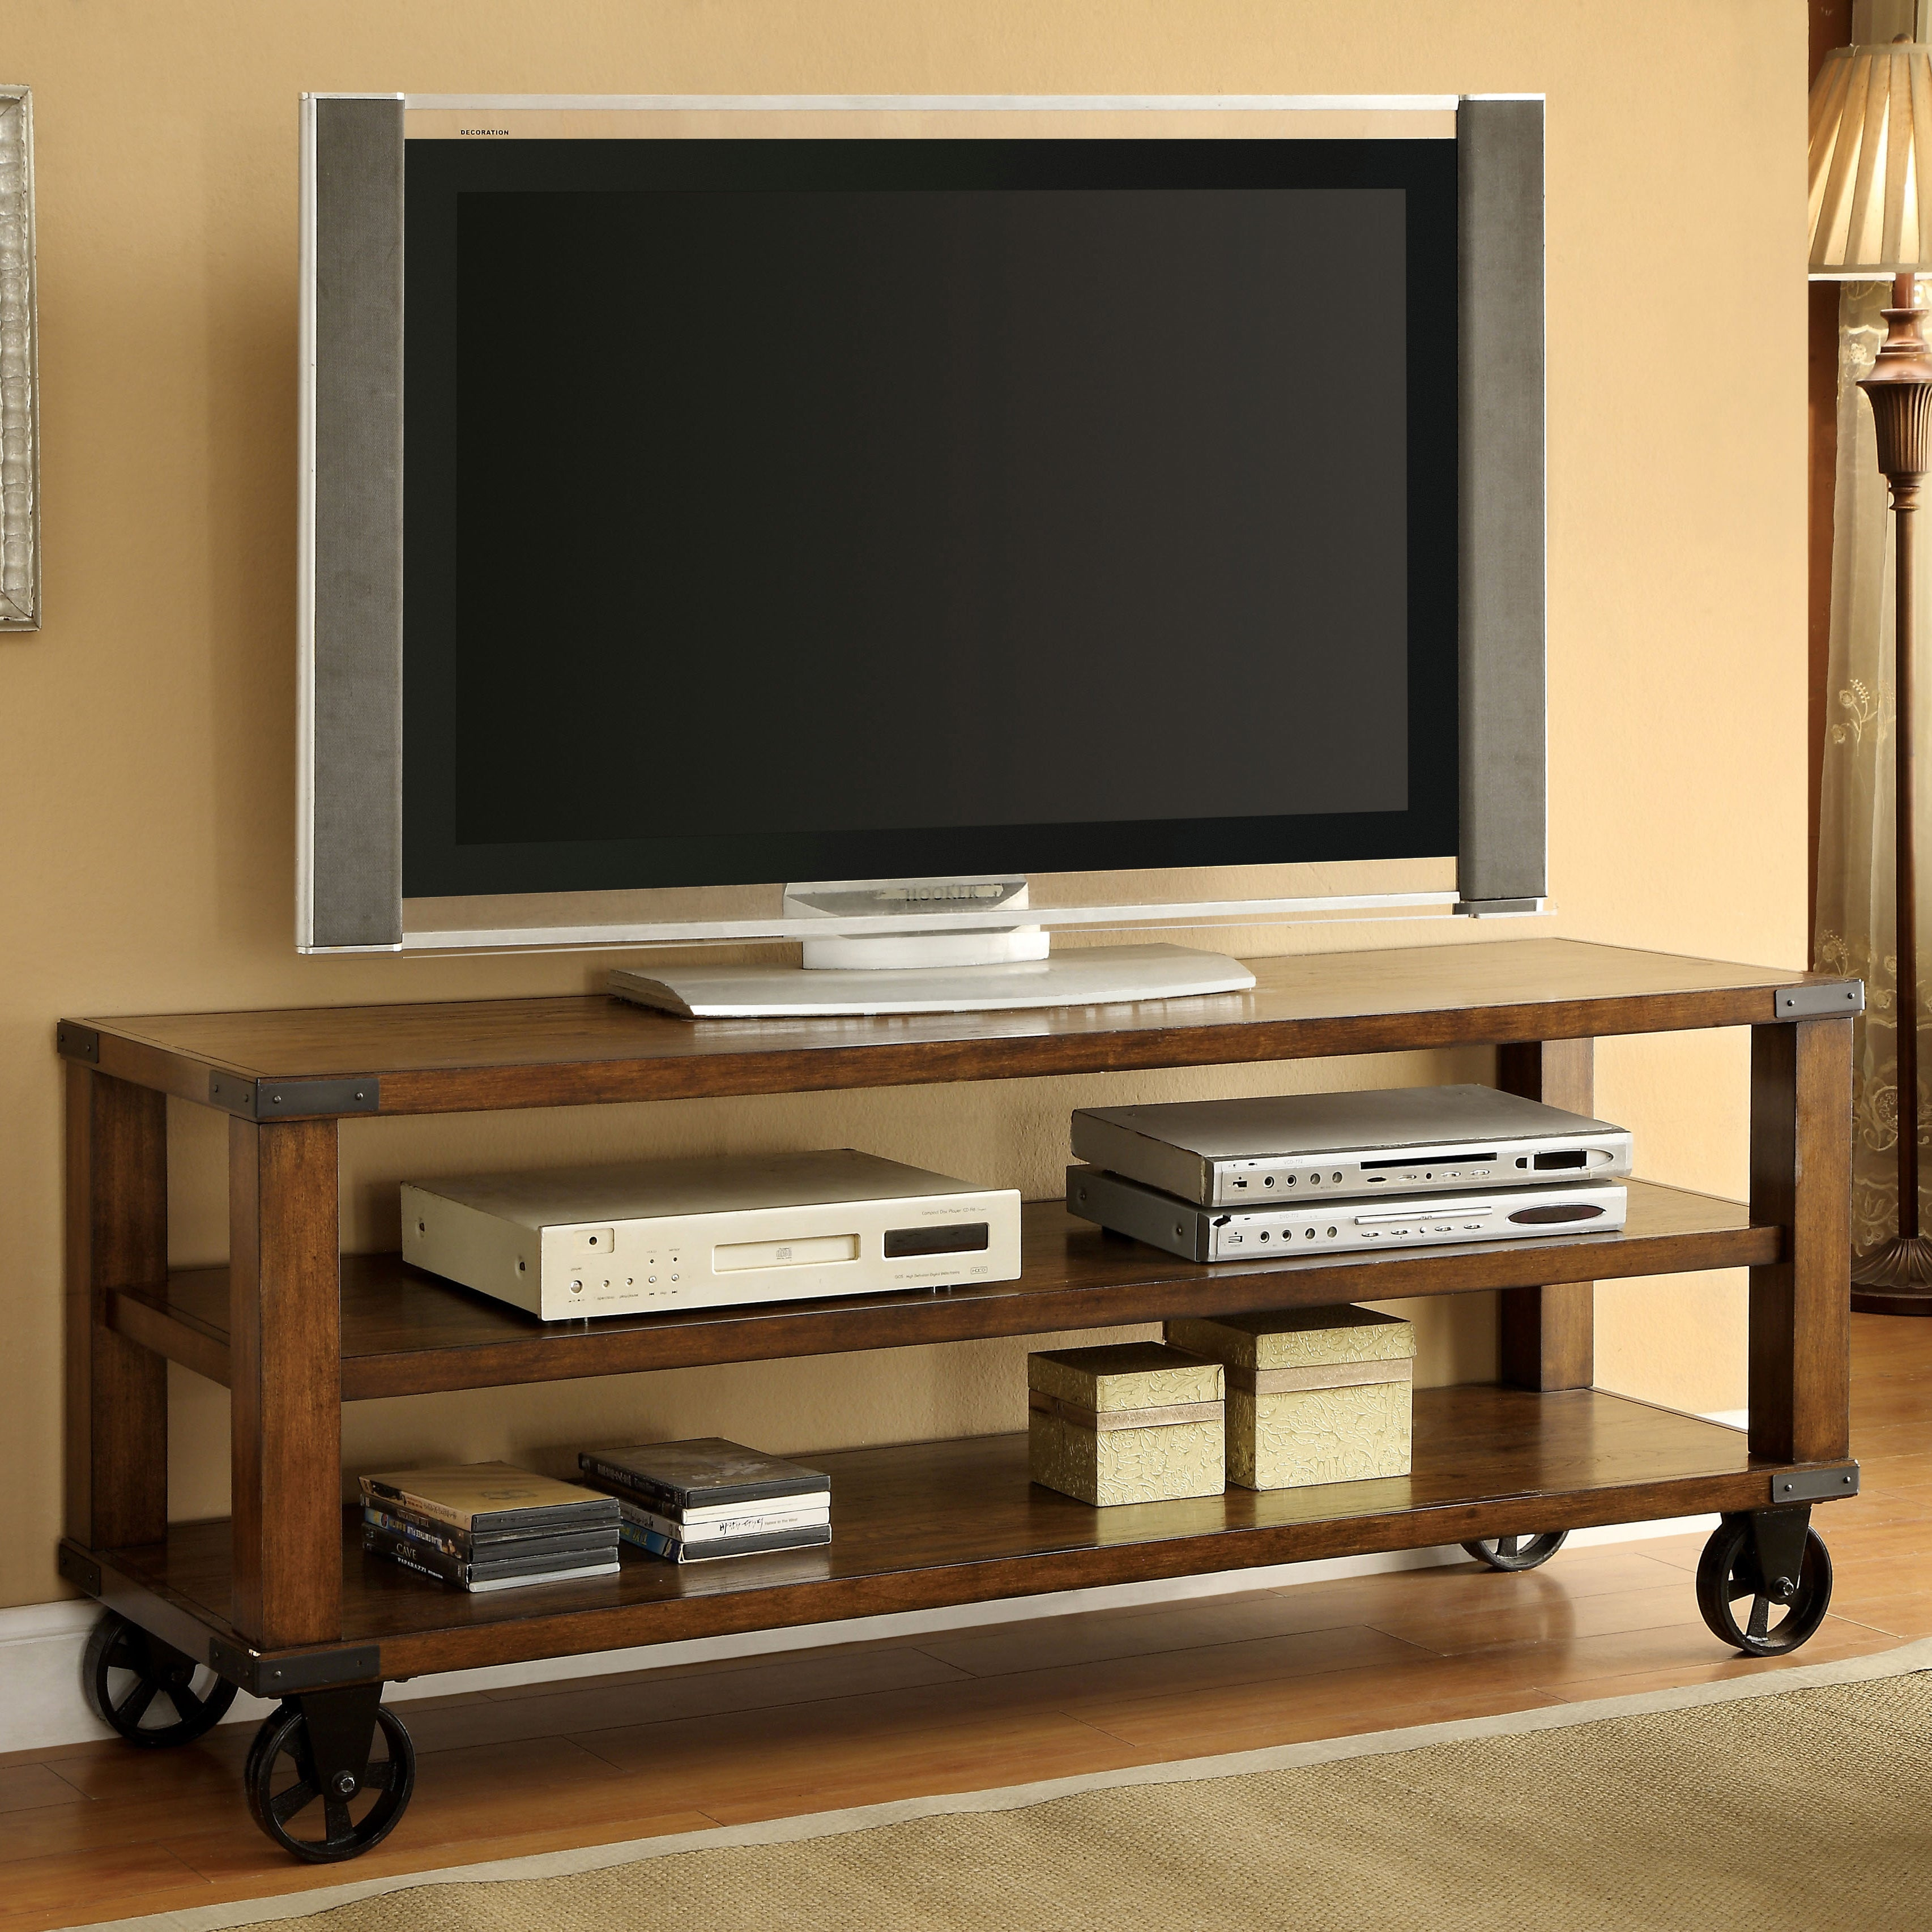 Furniture of America Royce Industrial 60-inch TV Stand (D...